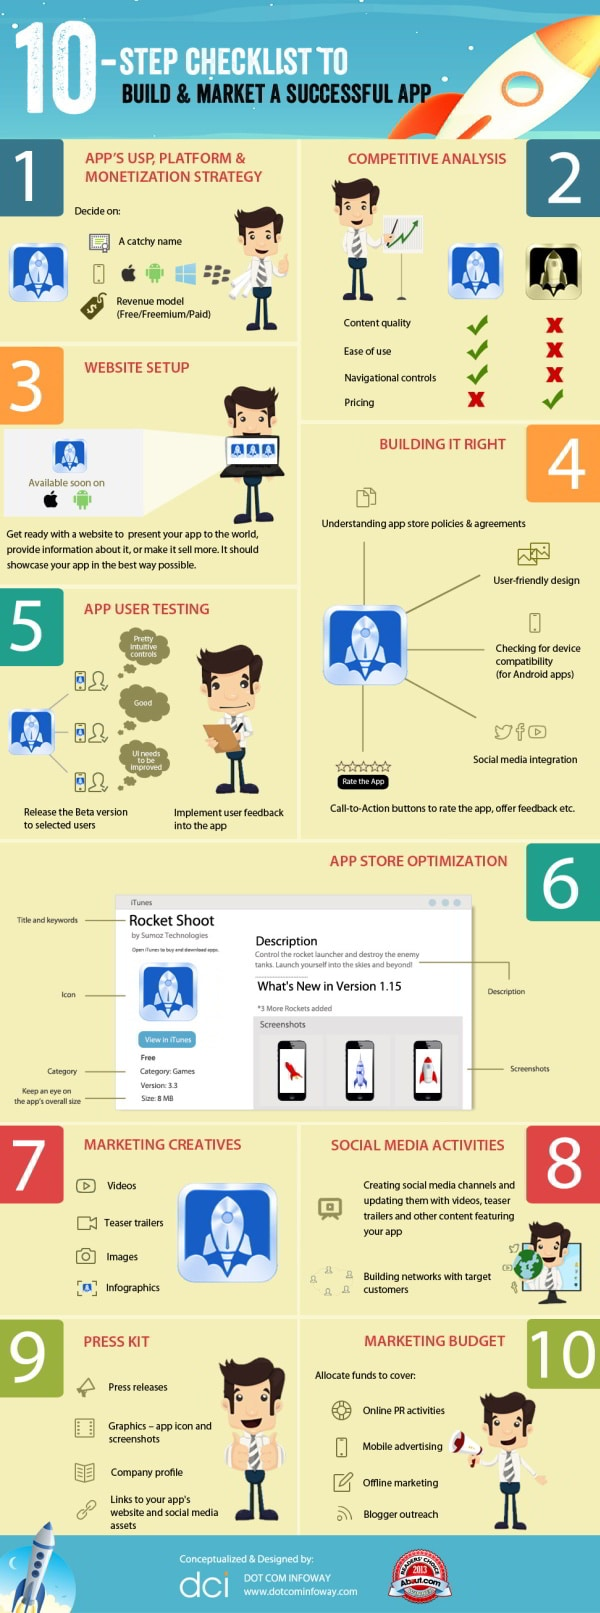 Réussir son application mobile : de la conception au marketing - infographie